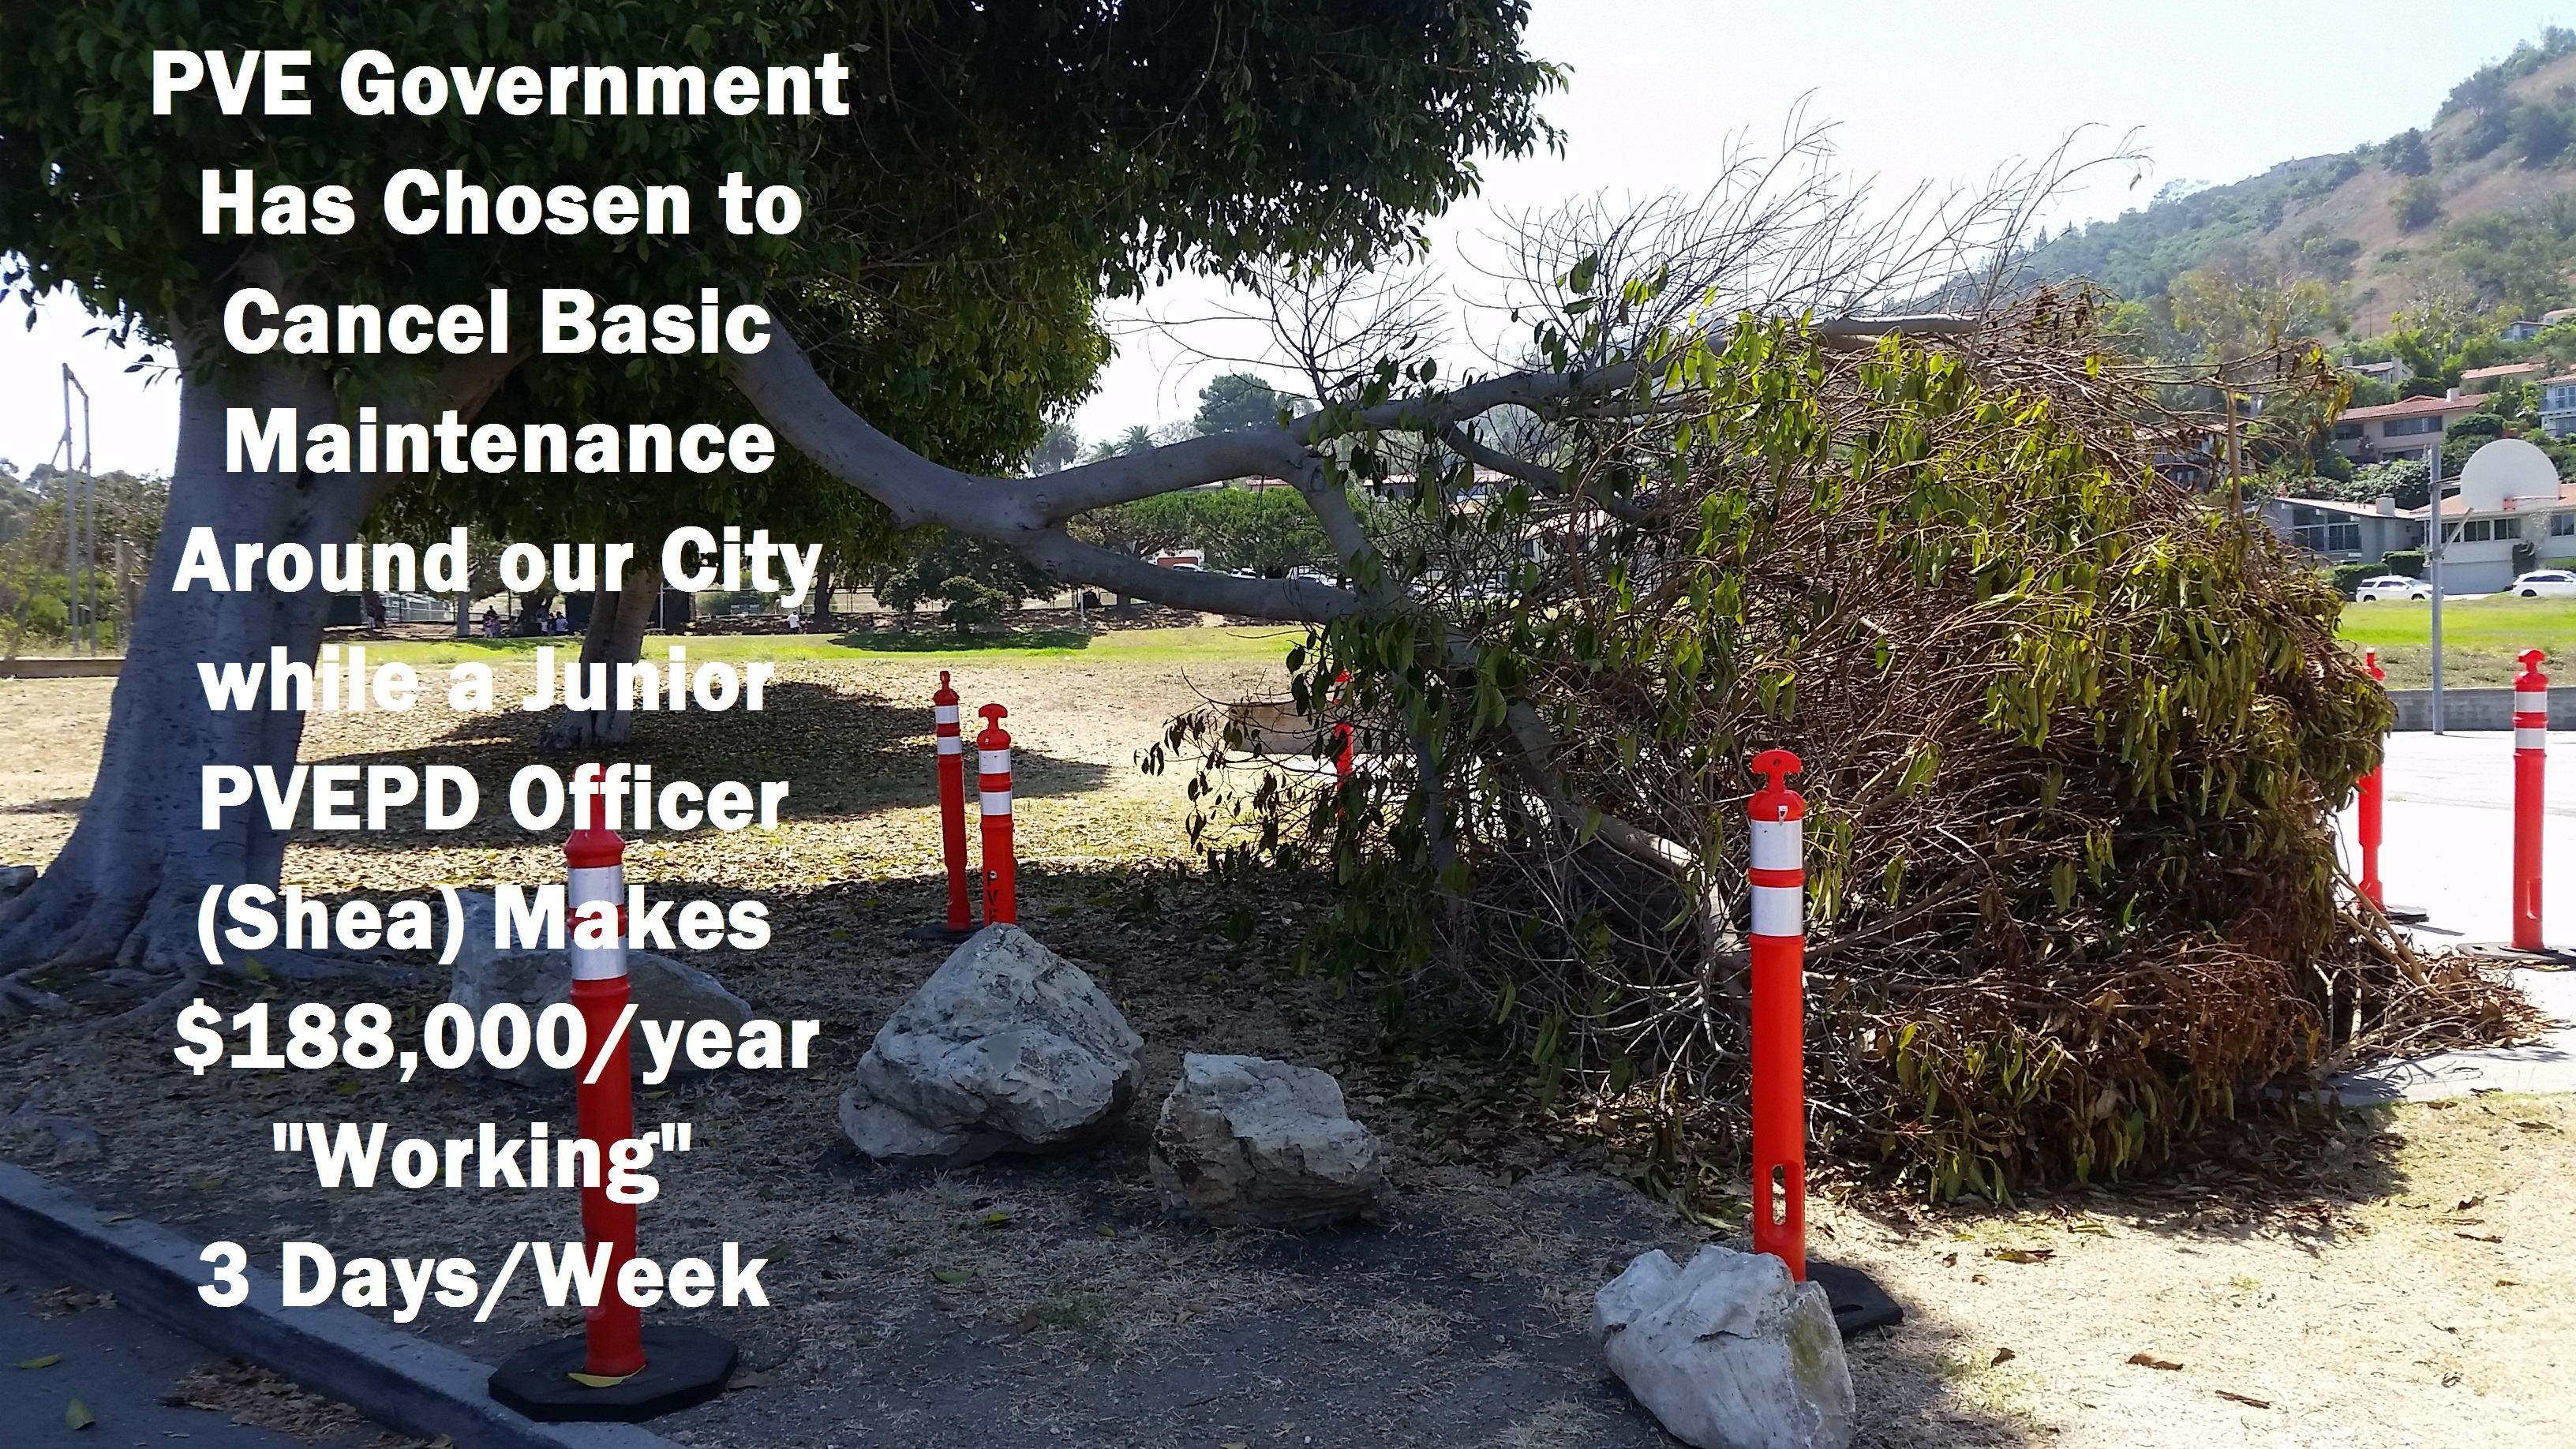 PVE Malaga Cove School Fallen Limb 07-21-2017 - Annotated